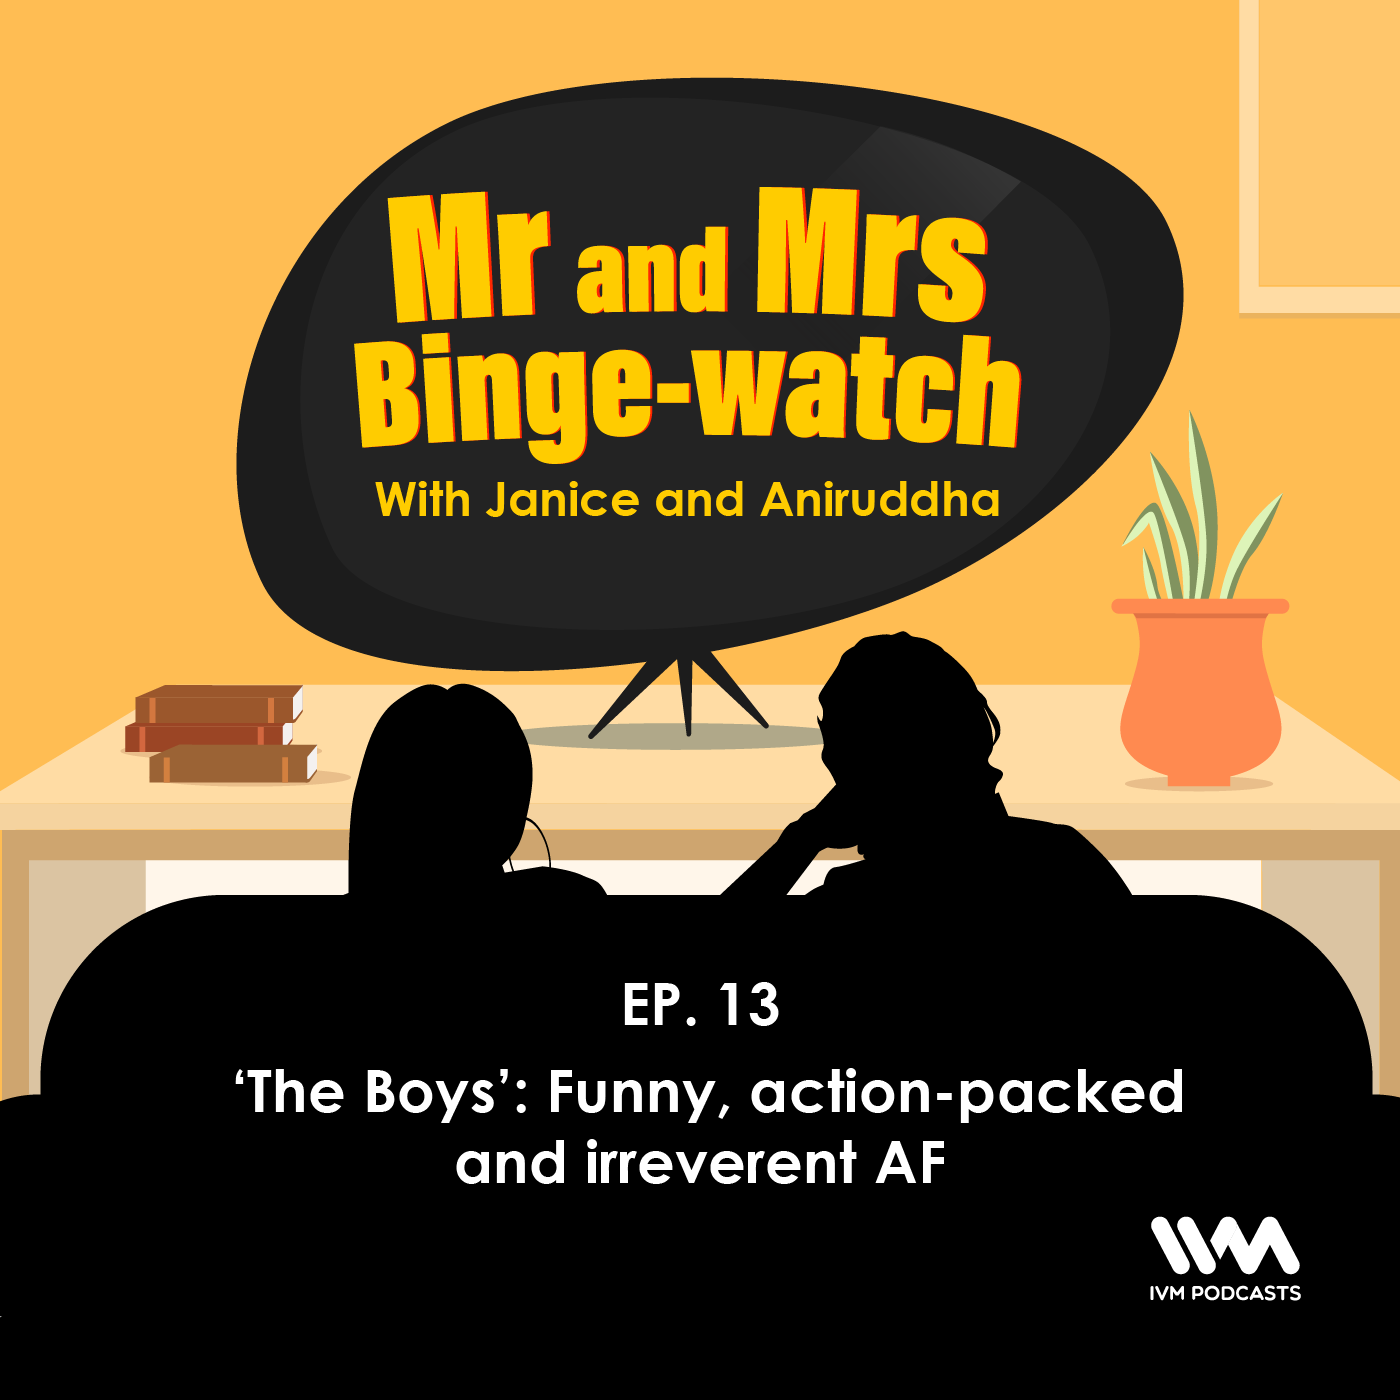 Ep. 13: 'The Boys': Funny, action-packed and irreverent AF